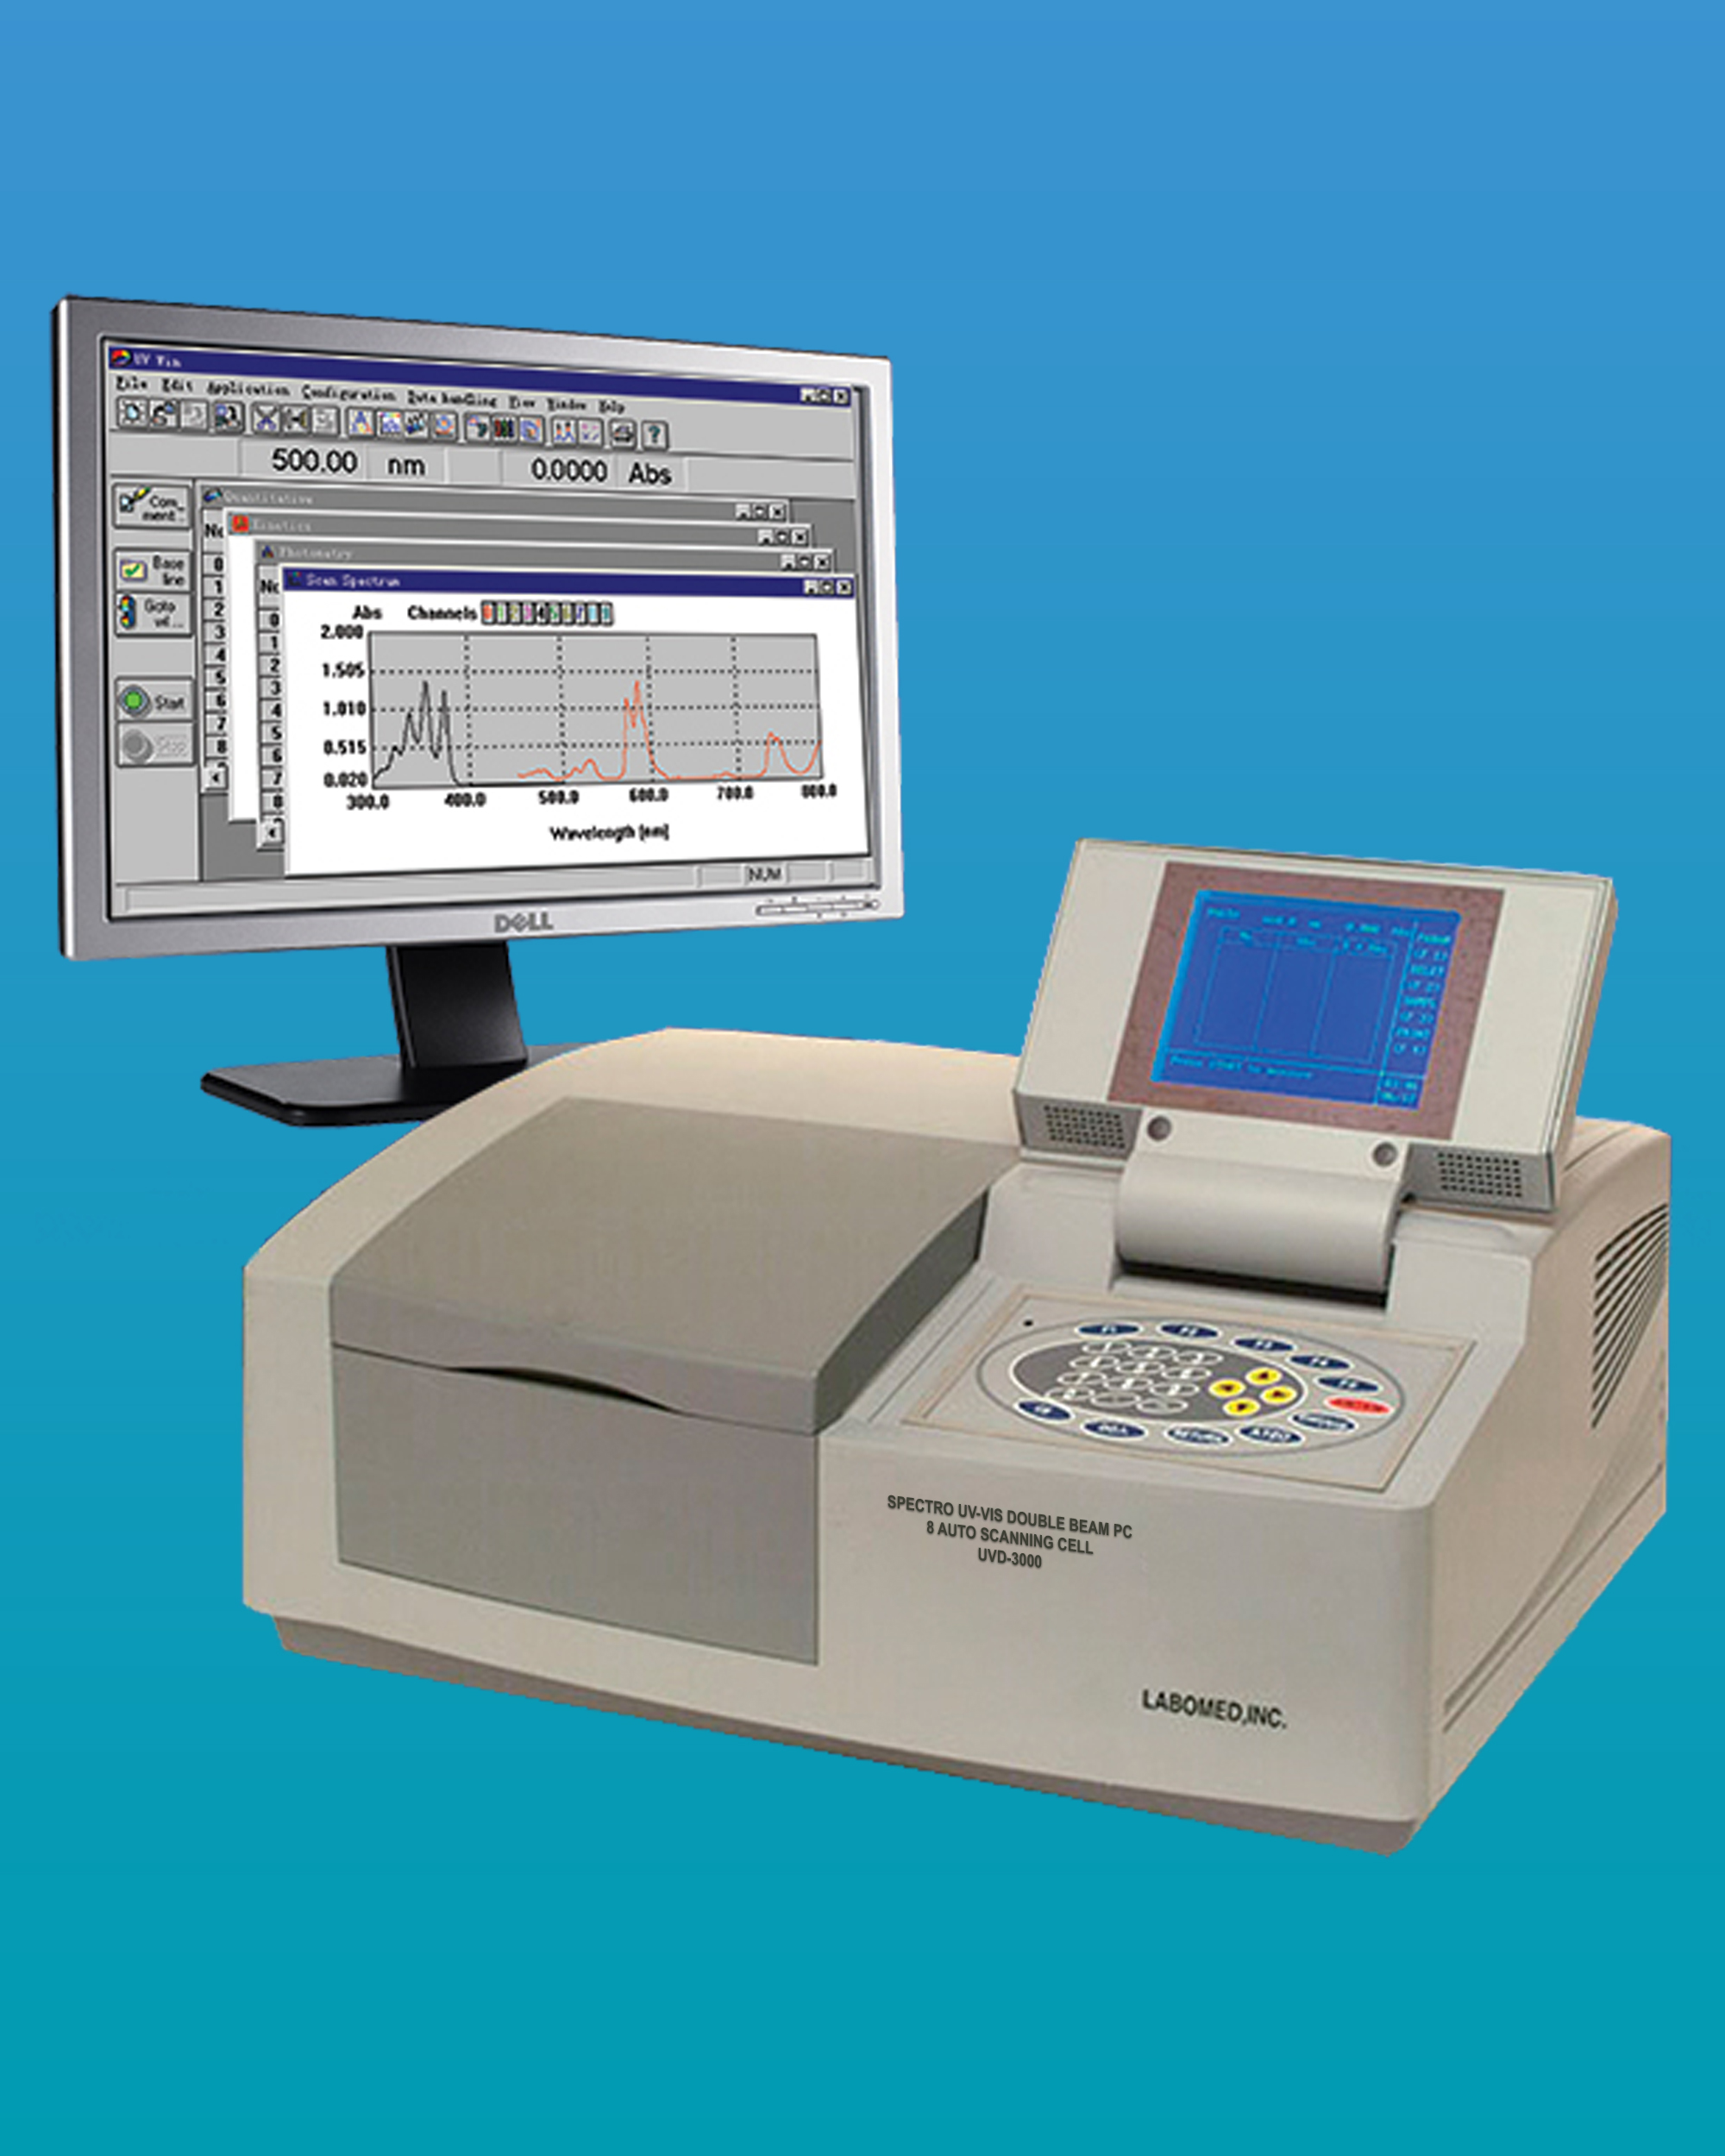 [UVD-3000] UV-VIS Double Beam 8CL Spectrophotometer